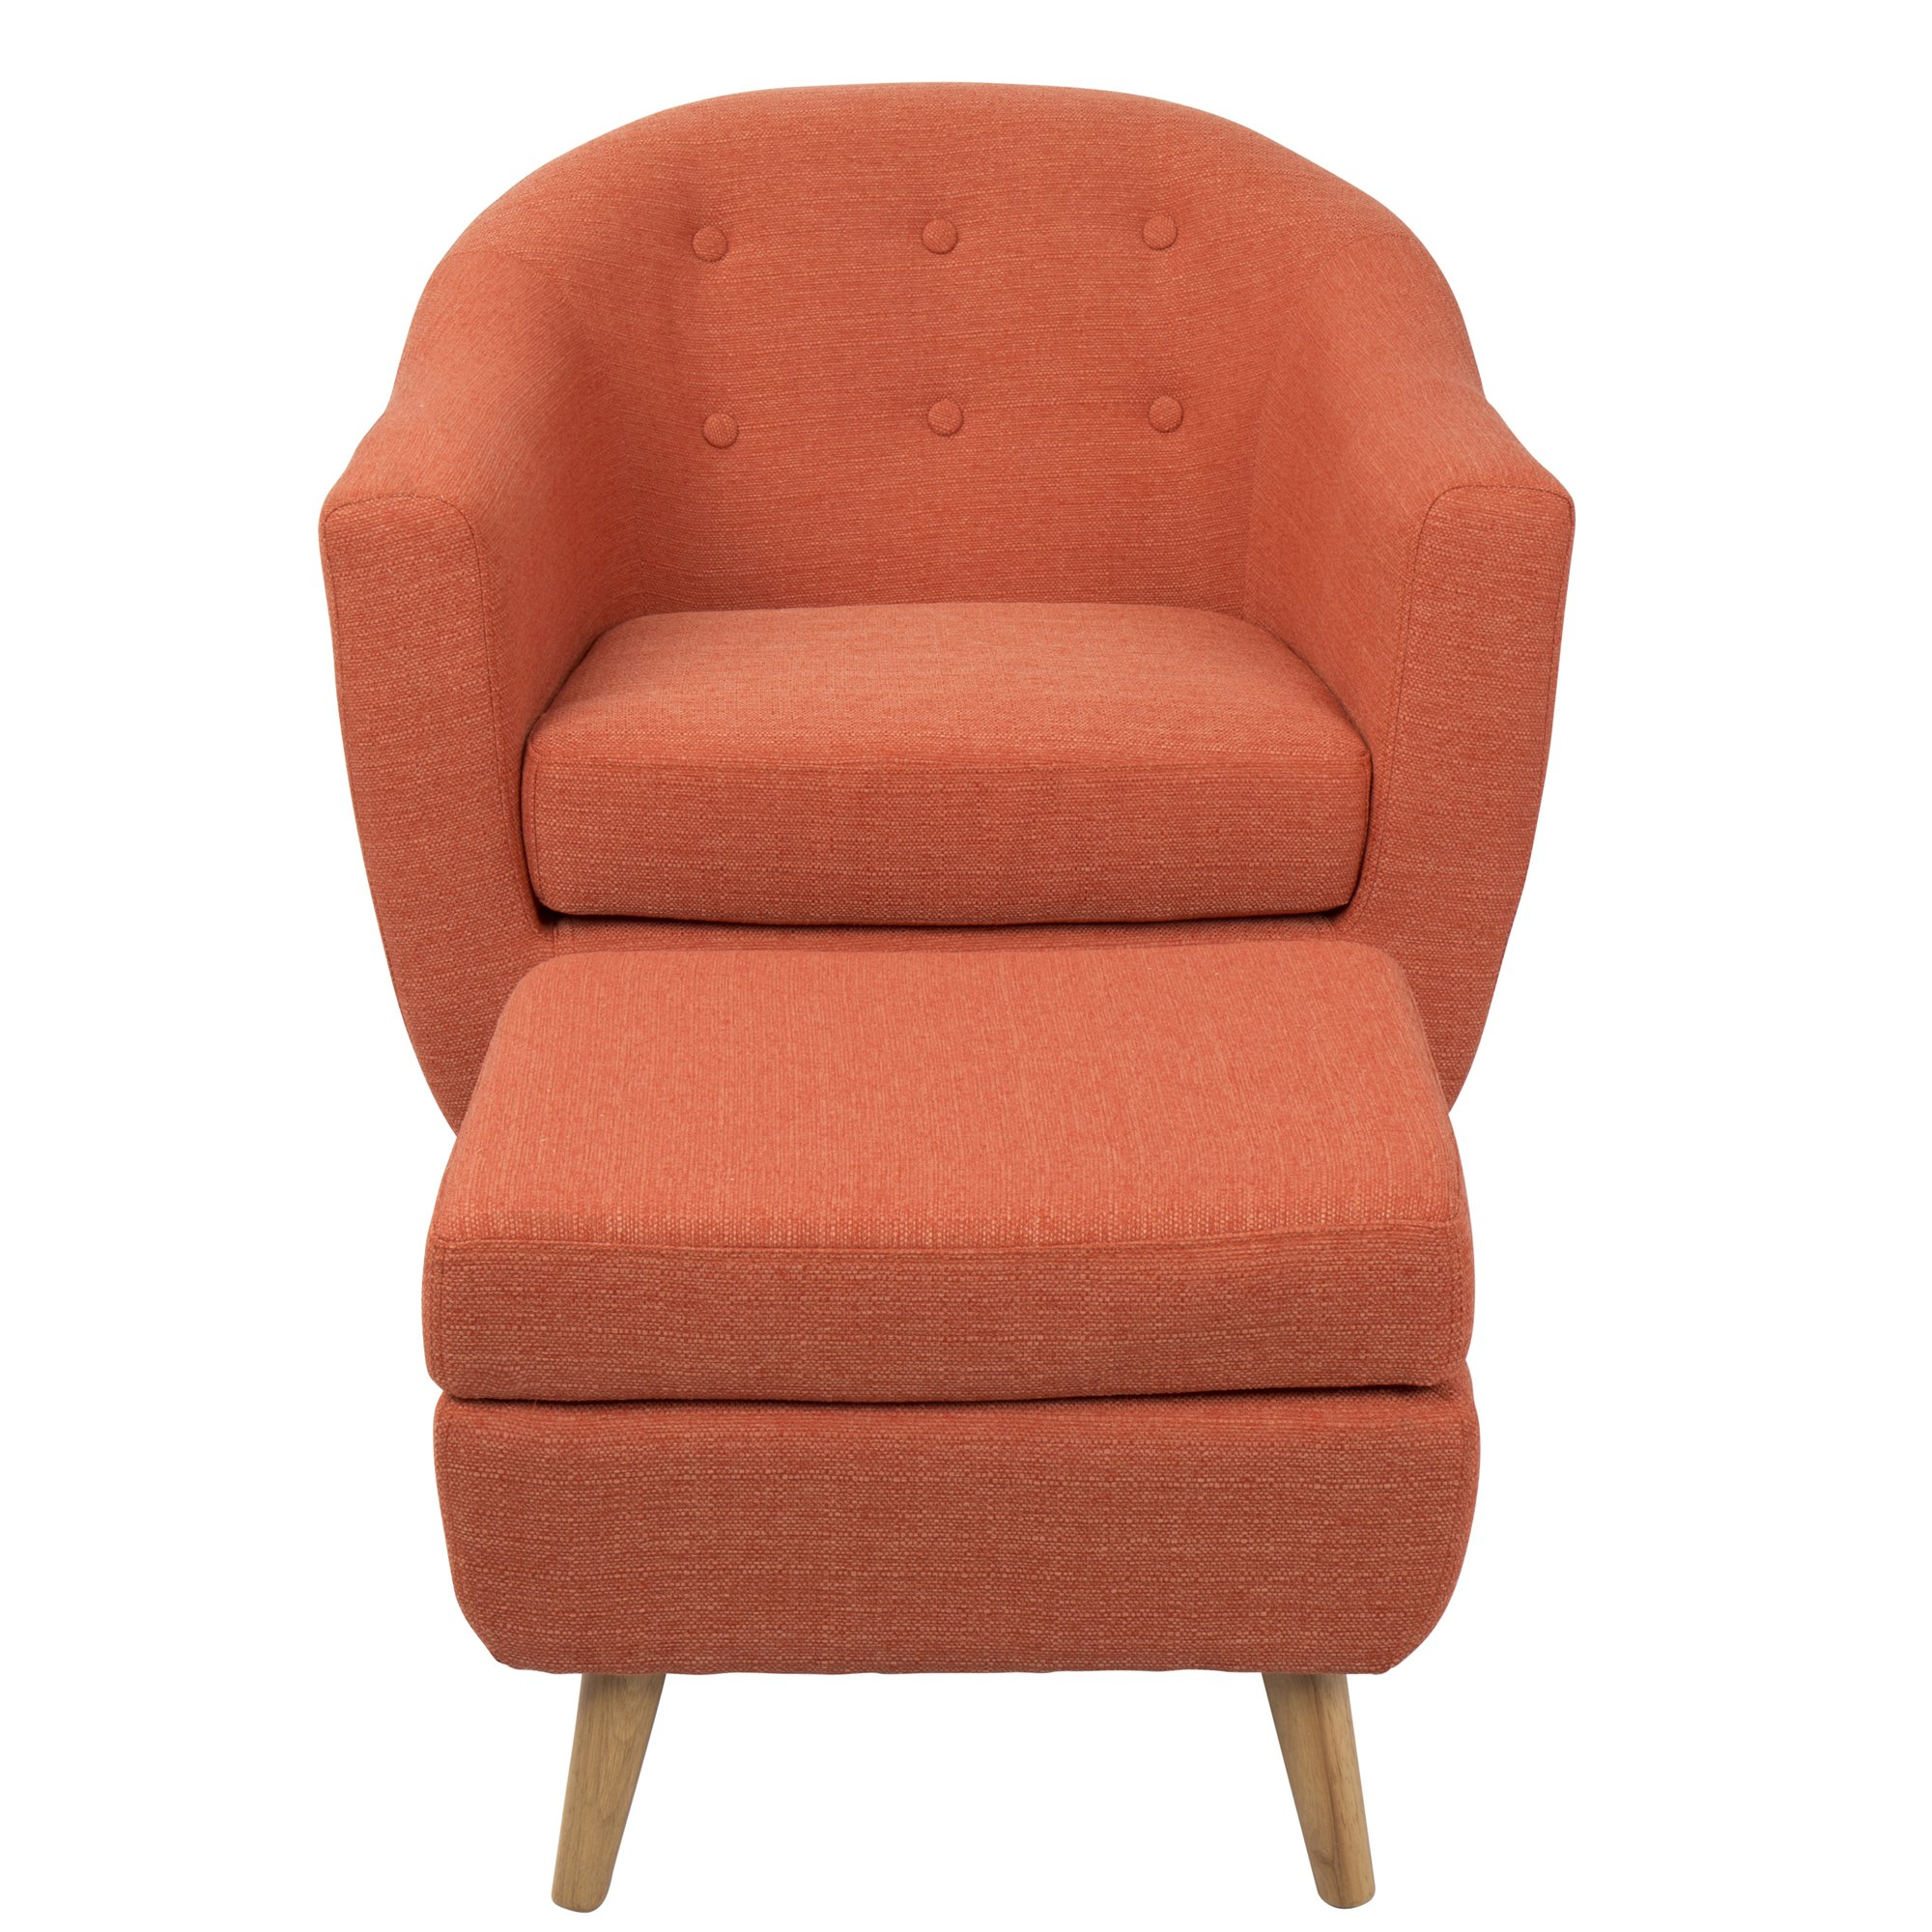 Barrel Chair Buying Guide You Should Read